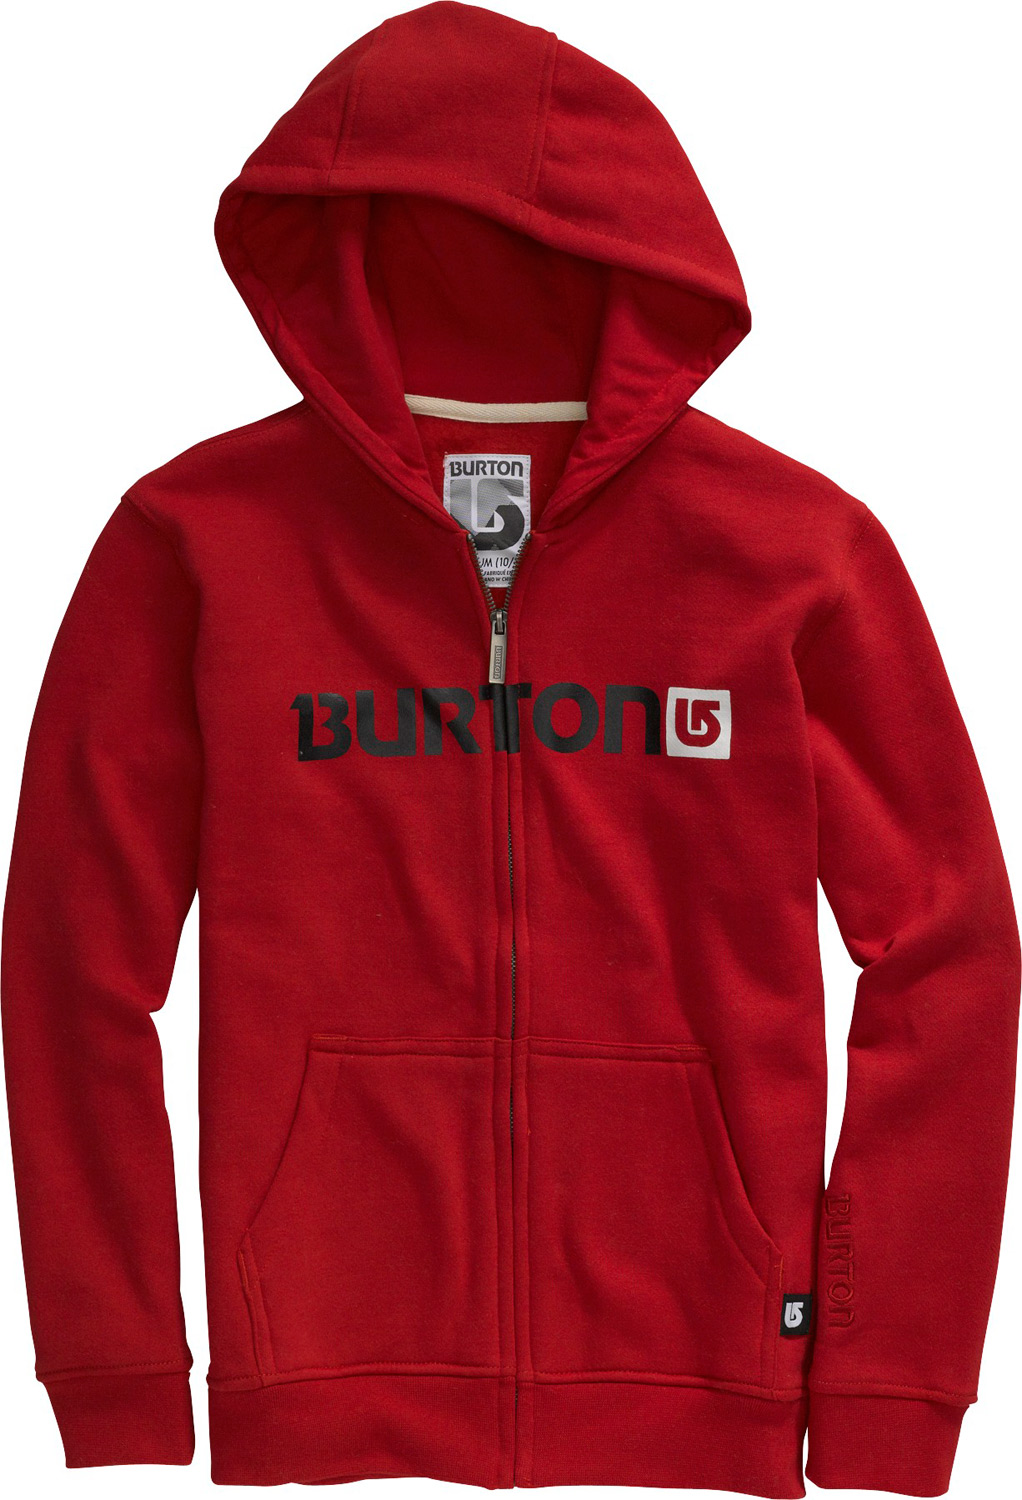 Snowboard Key Features of the Burton Logo Horizontal Hoodie: 80% Cotton/20% Polyester, 300G Fleece Kangaroo Hand Warmer Pocket w/Interior Media Stash Signature Fit Hidden Side Seam Stash Pocket Word Marker Logo Print on Chest S-XL - $30.95